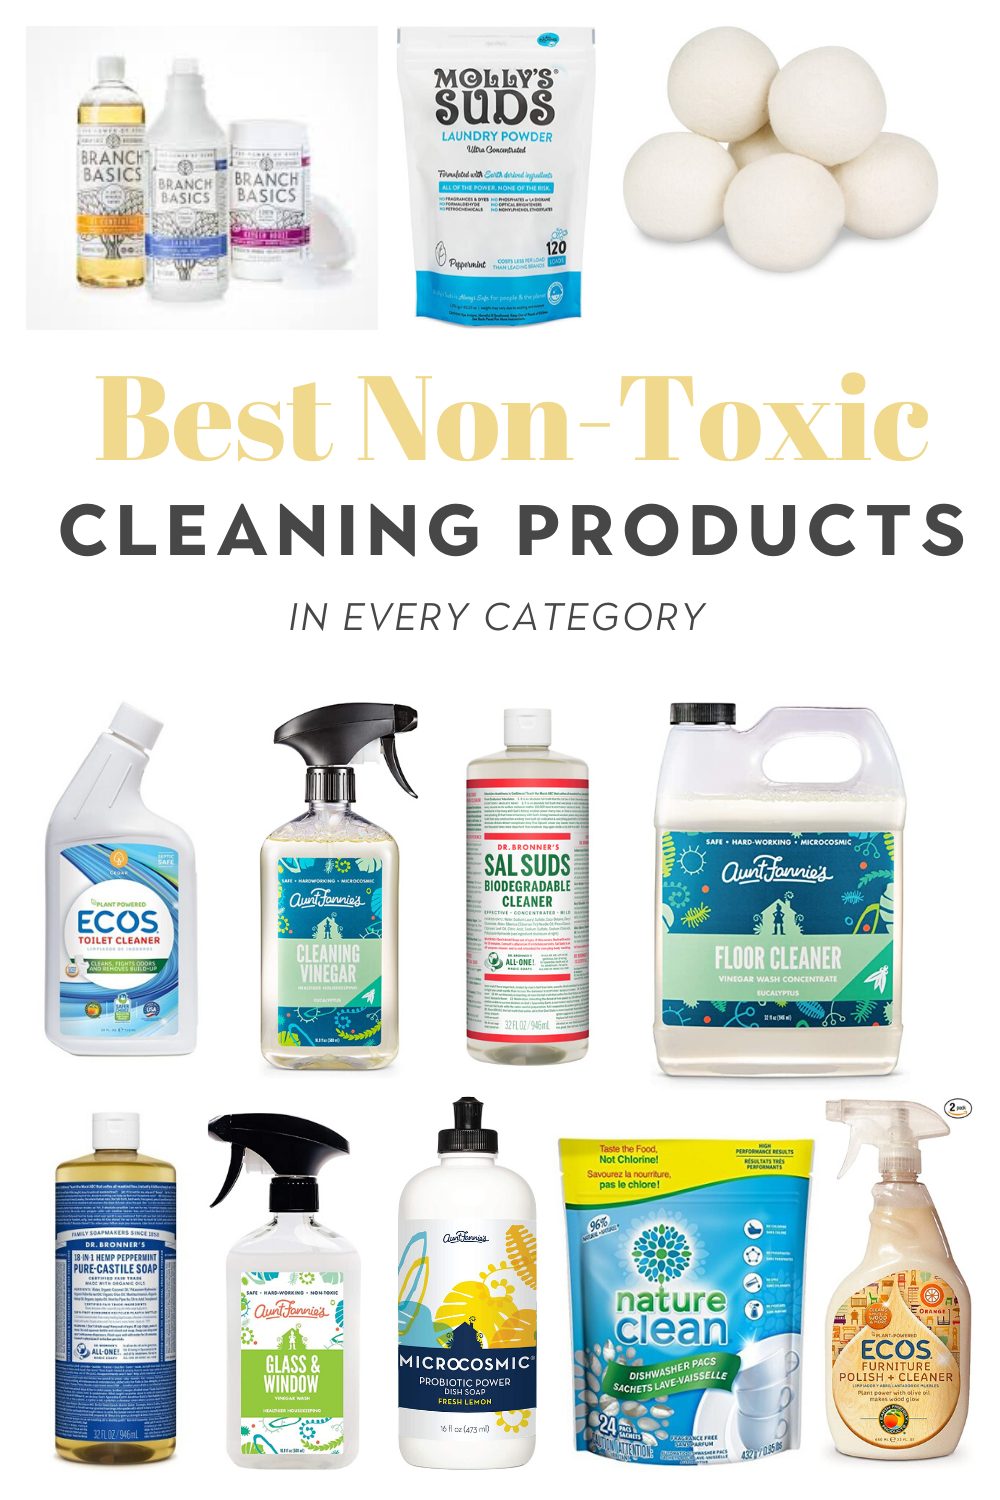 Best non-toxic cleaning products in every category